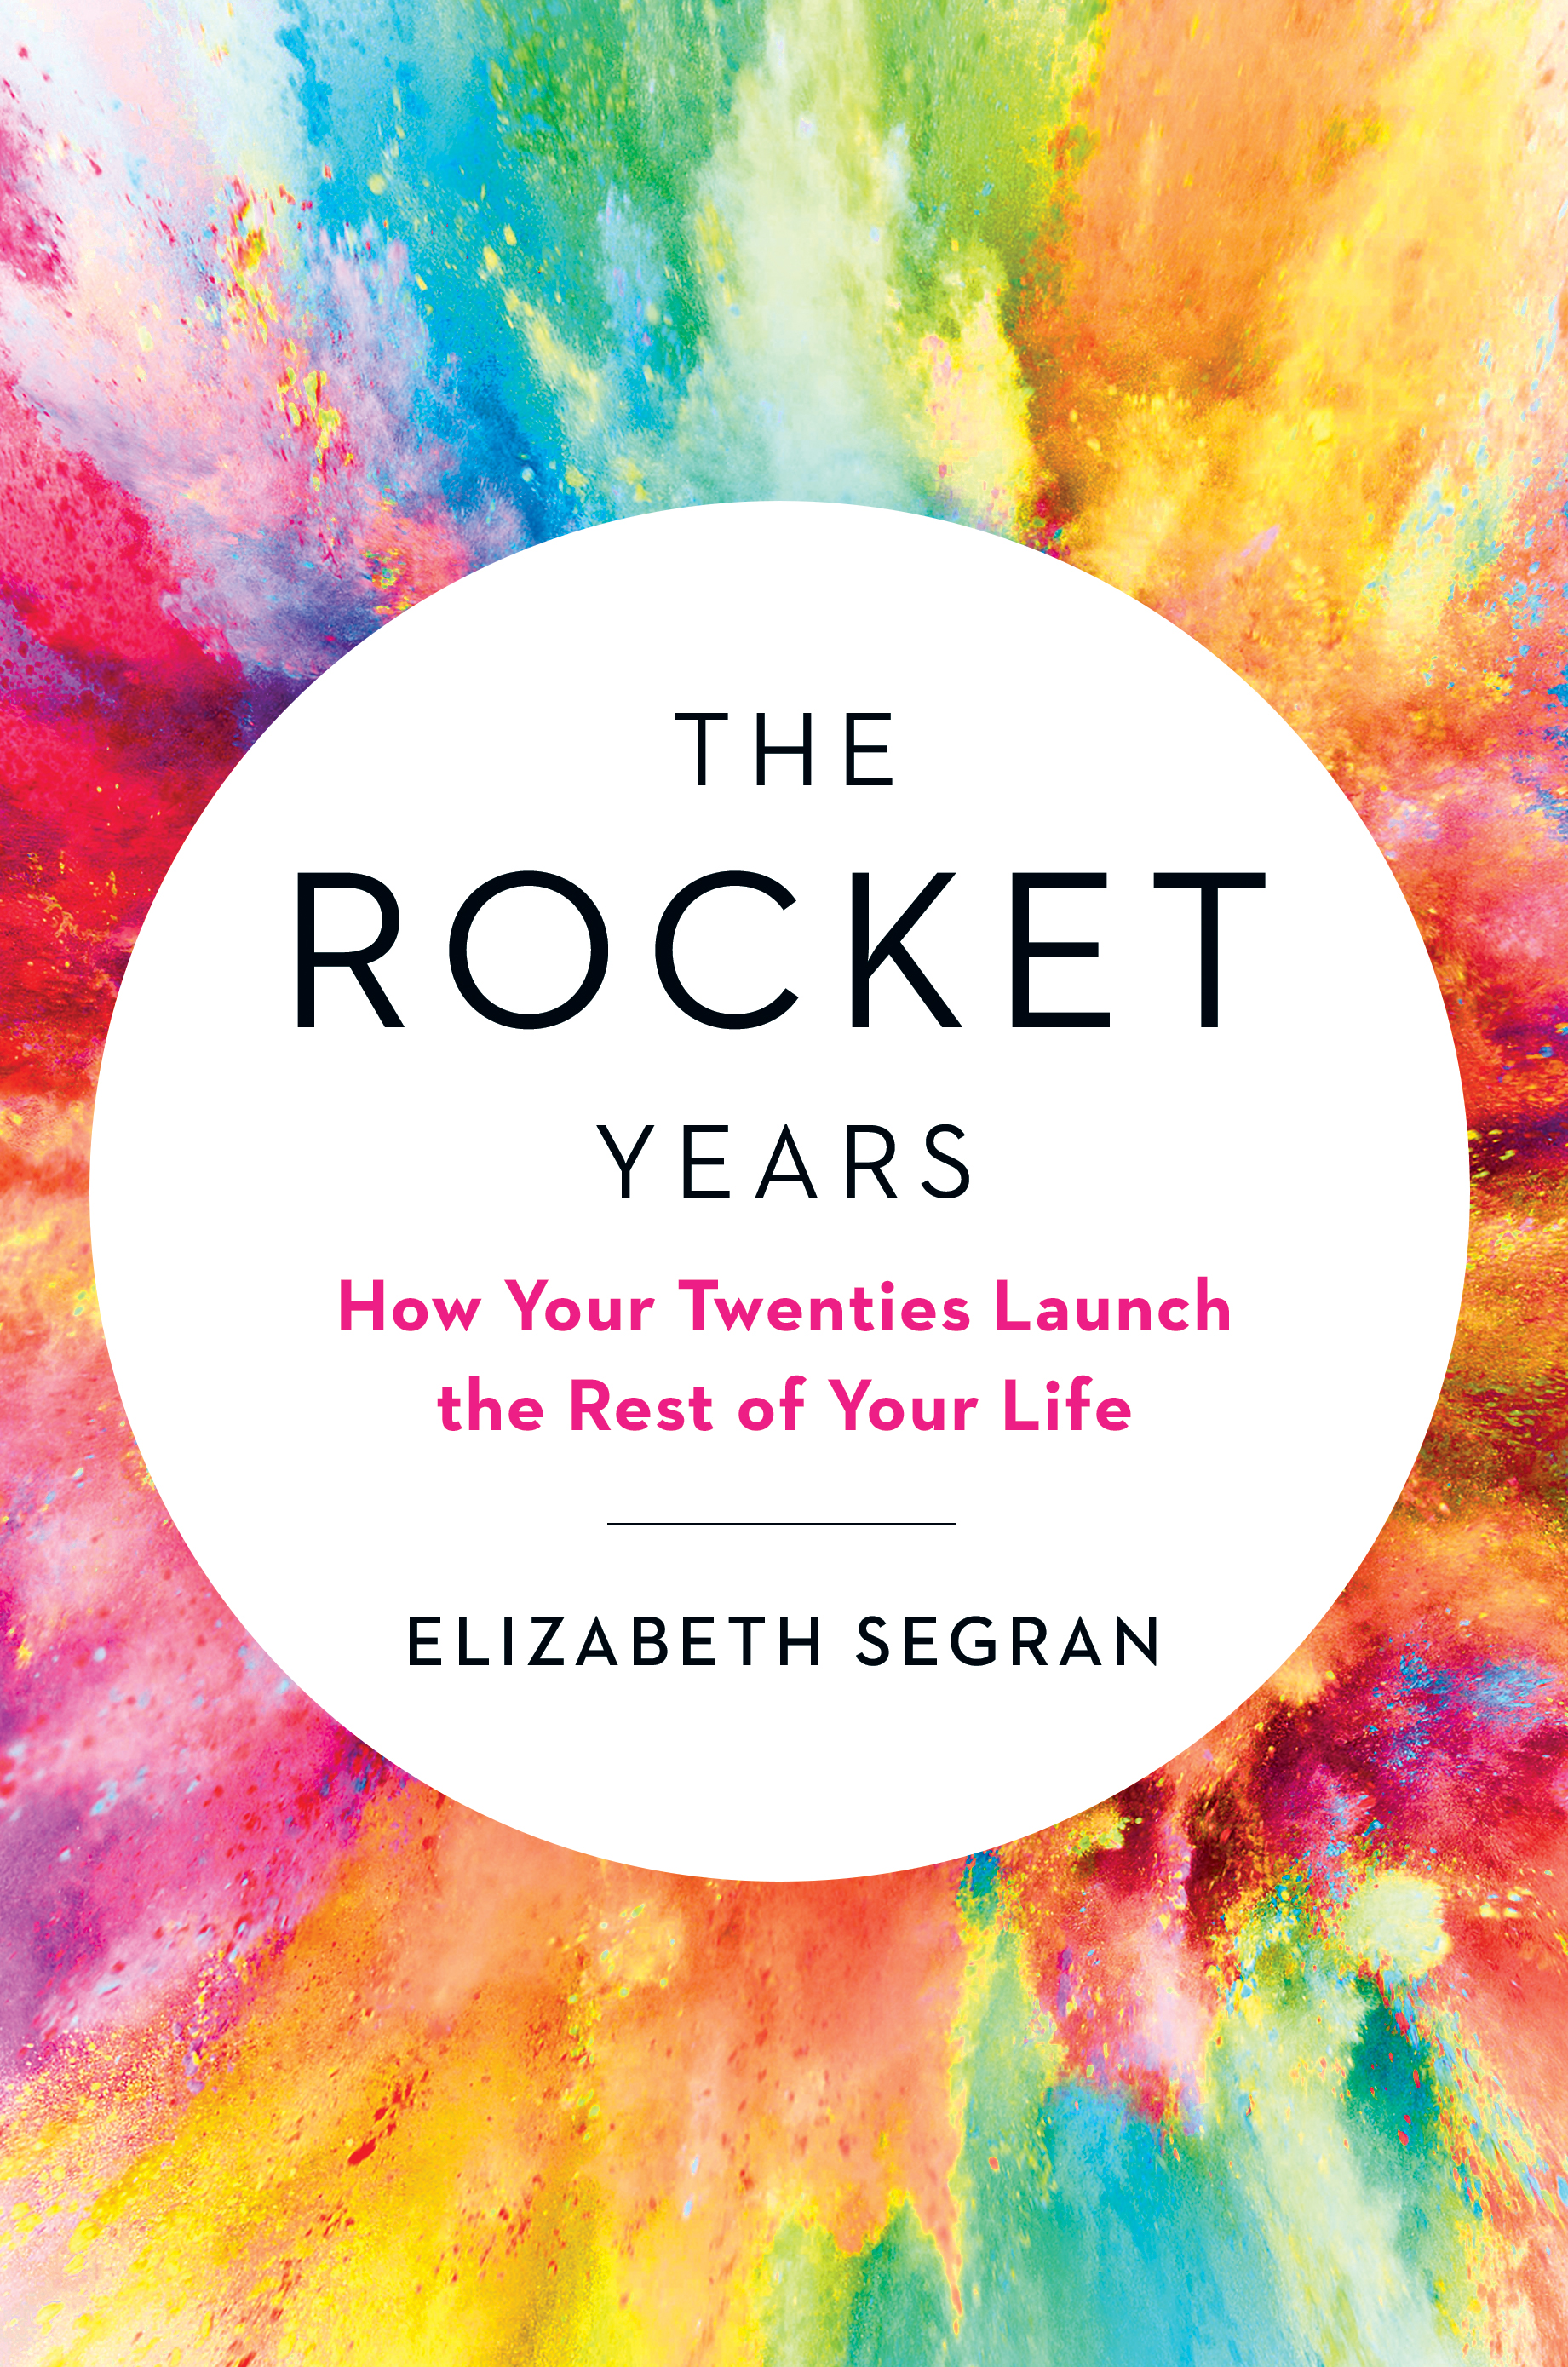 The Rocket Years - Coming in April 2020 from Harper Collins.We tend to think of our twenties as a playground for life: A time for low-consequence experimentation and delaying big decisions. But while you're muddling through those years—exploring new cities, dating the wrong people, hopping between jobs—a small shift in your flight path can mean the difference between landing on Mars or Saturn.As the data shows, the choices we make (or put off) during this critical decade about our career, marriage, health, friends, even downtime have the greatest impact on how our lives play out.Elizabeth Segran invites readers to think critically and holistically about the life they want to build. With signature warmth and humor, Segran is the guide we all wish we had to show us the way. Blending insightful anecdotes with research from economics, sociology, and political science, The Rocket Years is an empowering exploration of these exciting, confusing, wonderful years.